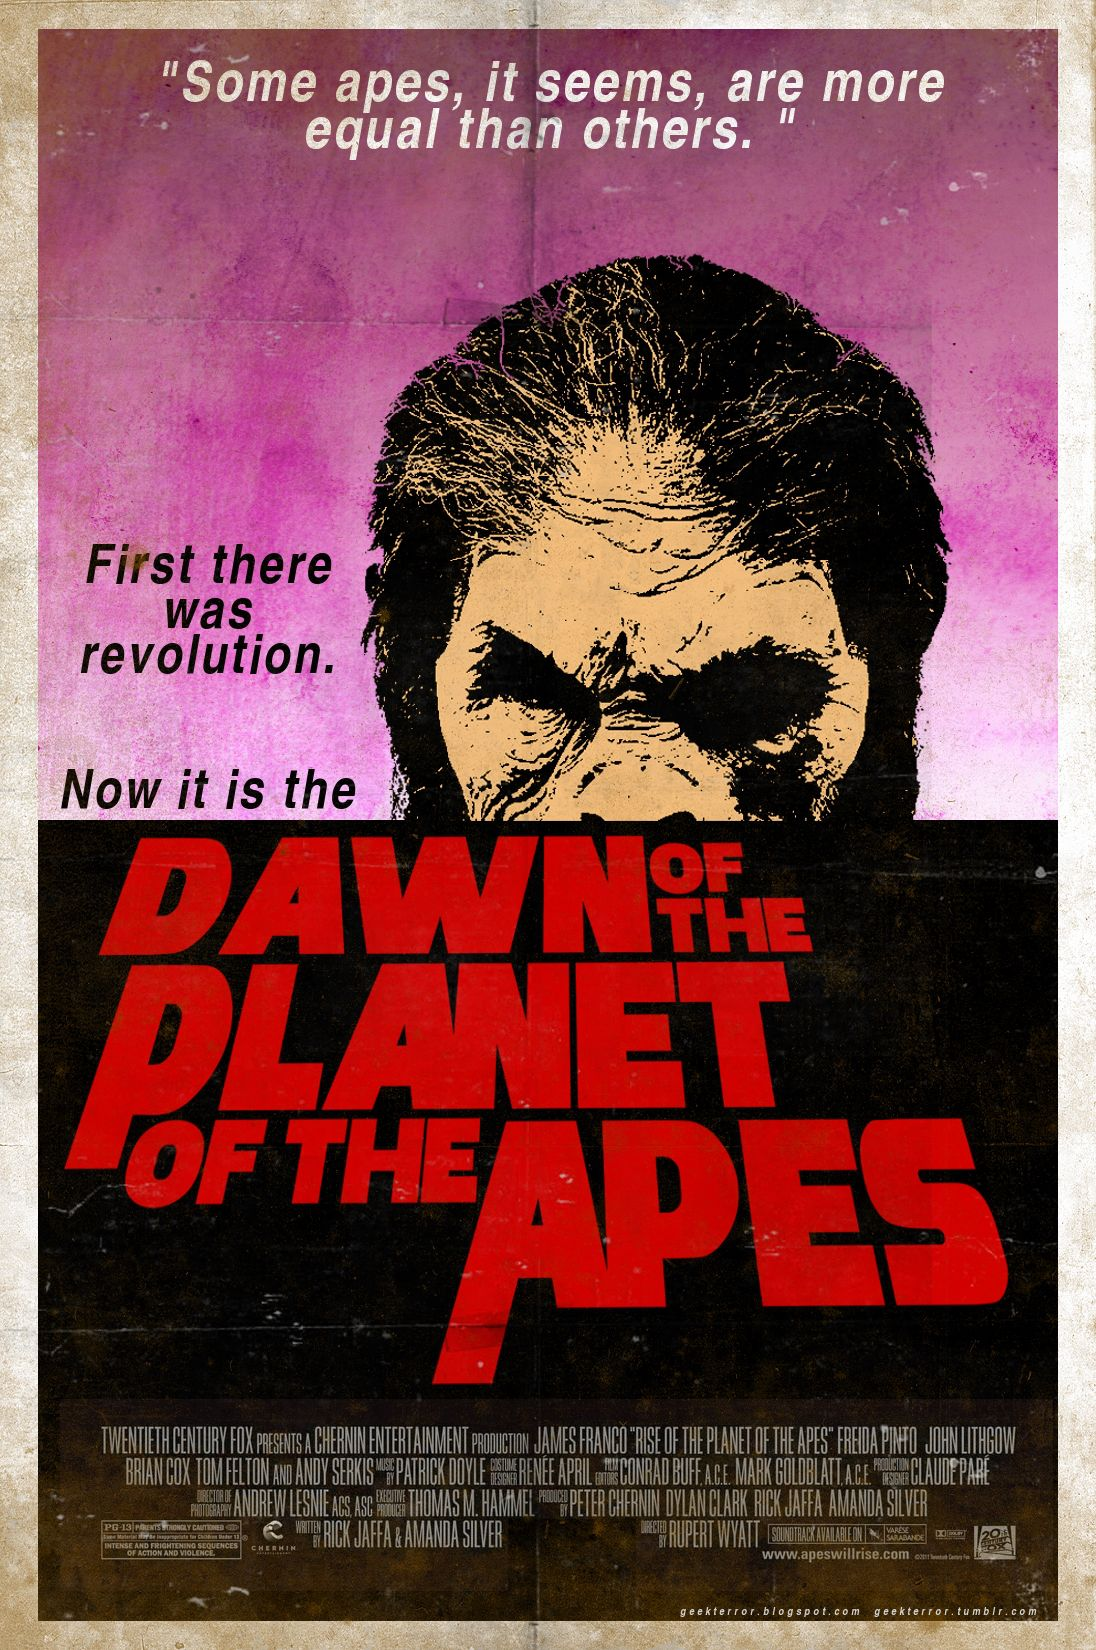 Dawn of the Planet of the Apes gets a director in Mattew Reeves